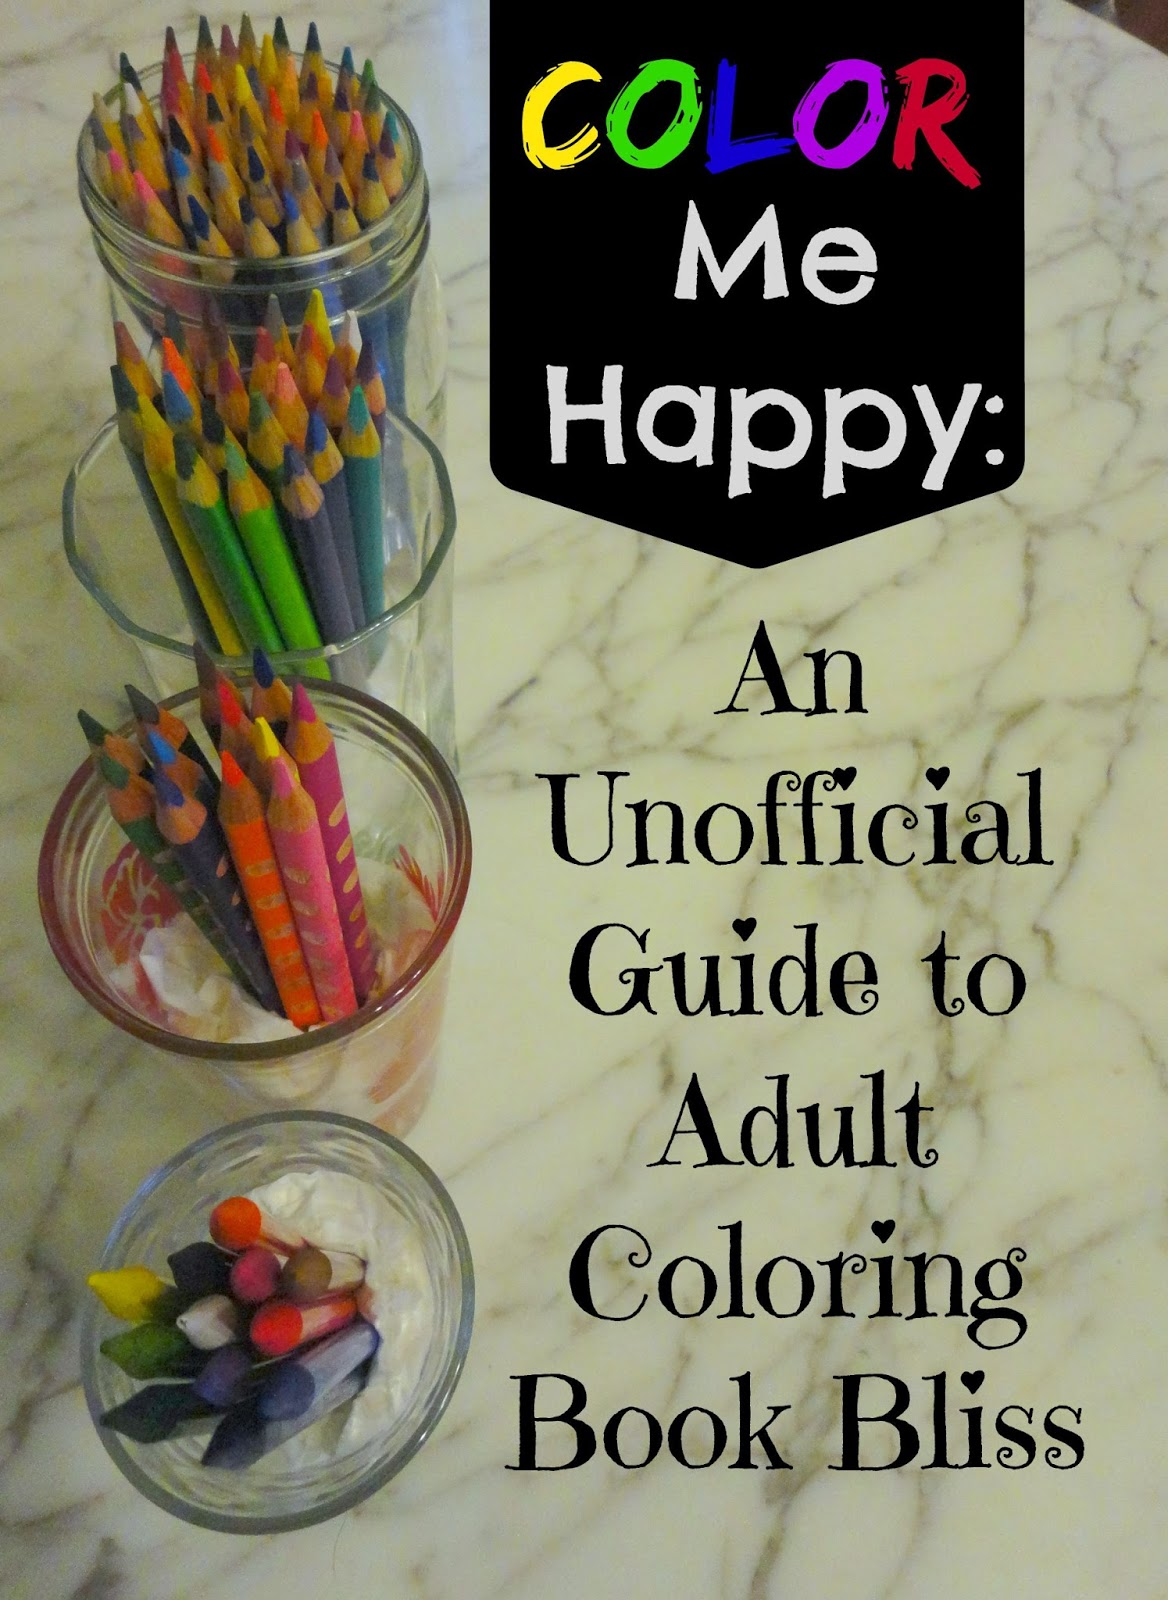 Coloring book with guide - Color Me Happy An Unofficial Guide To Adult Coloring Book Bliss